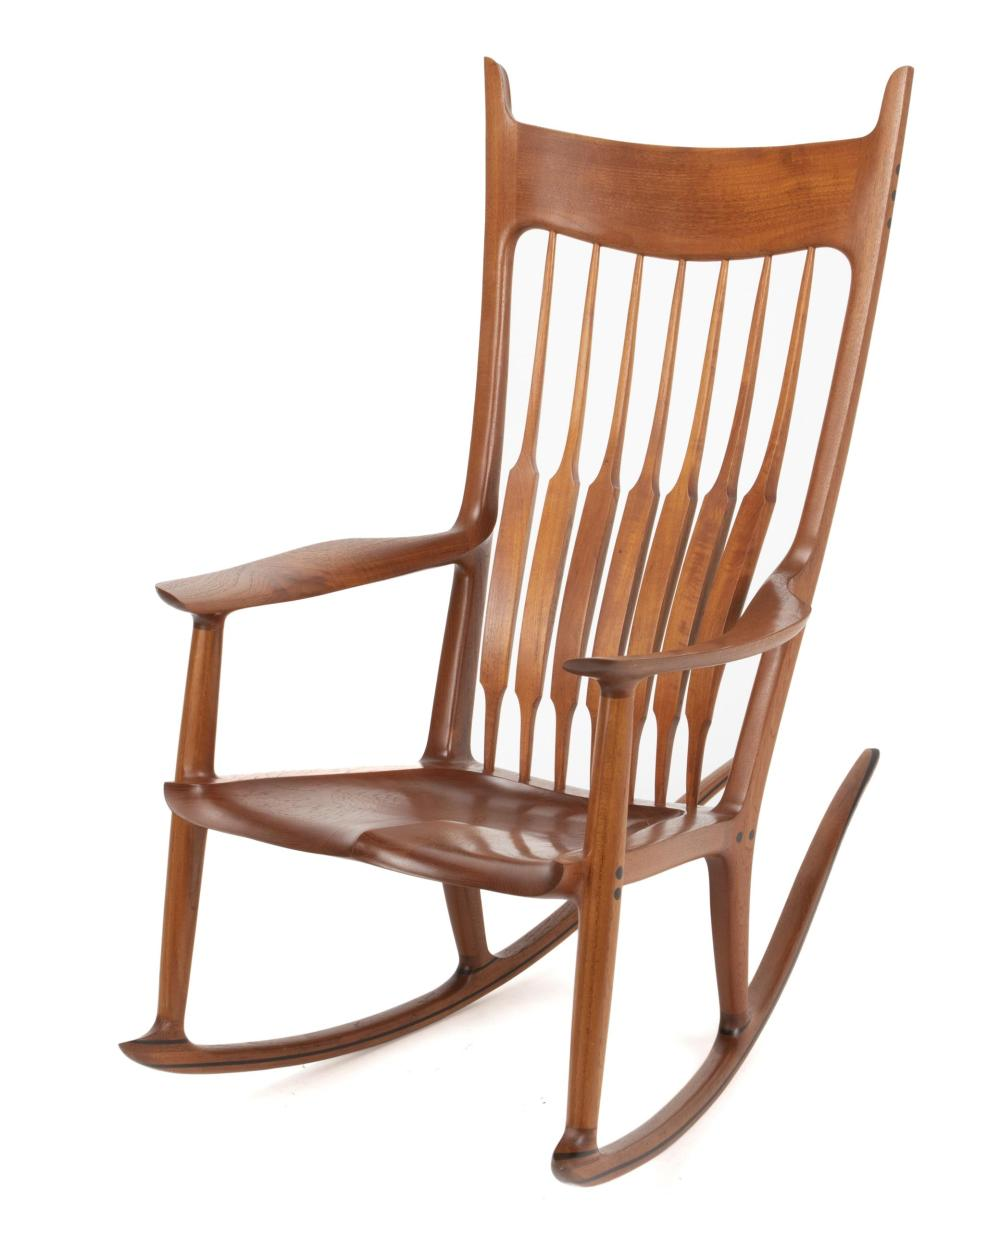 "Sam Maloof, (1916-2009, American), Rocking chair, Teak with ebonized plugs and decorative banding, 45"" H x 46"" W x 26.125"" D"